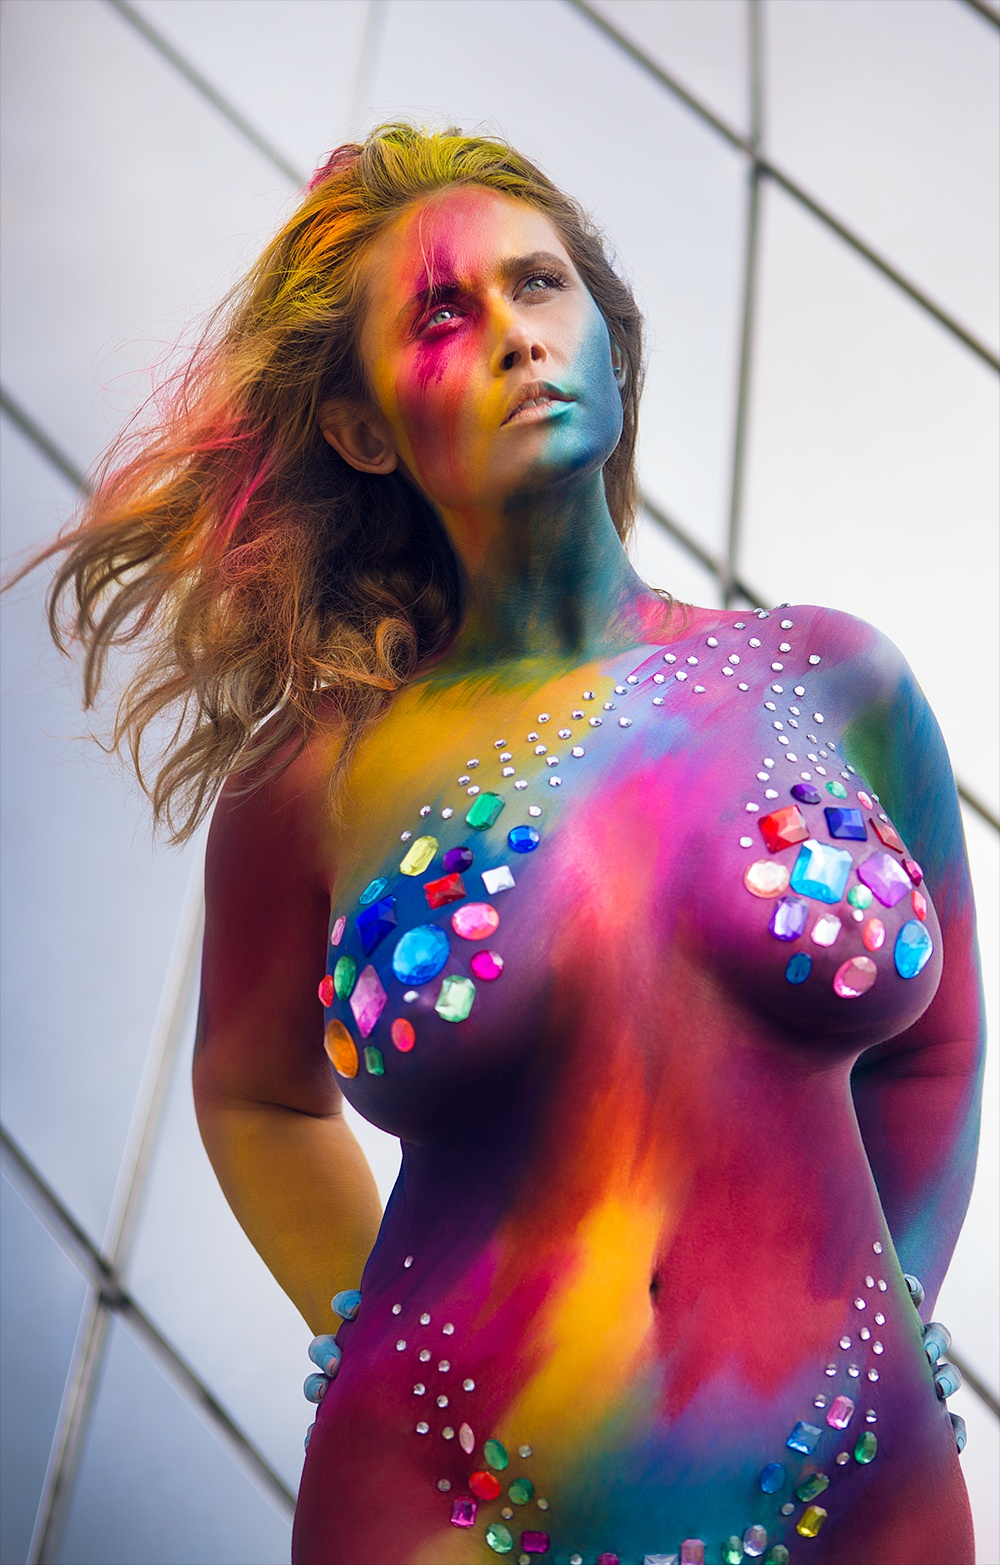 Photo in Random #rainbow #body paint #color #vibrance #nude #gems #jewels #watercolor #woman #girl #washington state #tacoma #tacoma washington #curves #curvy